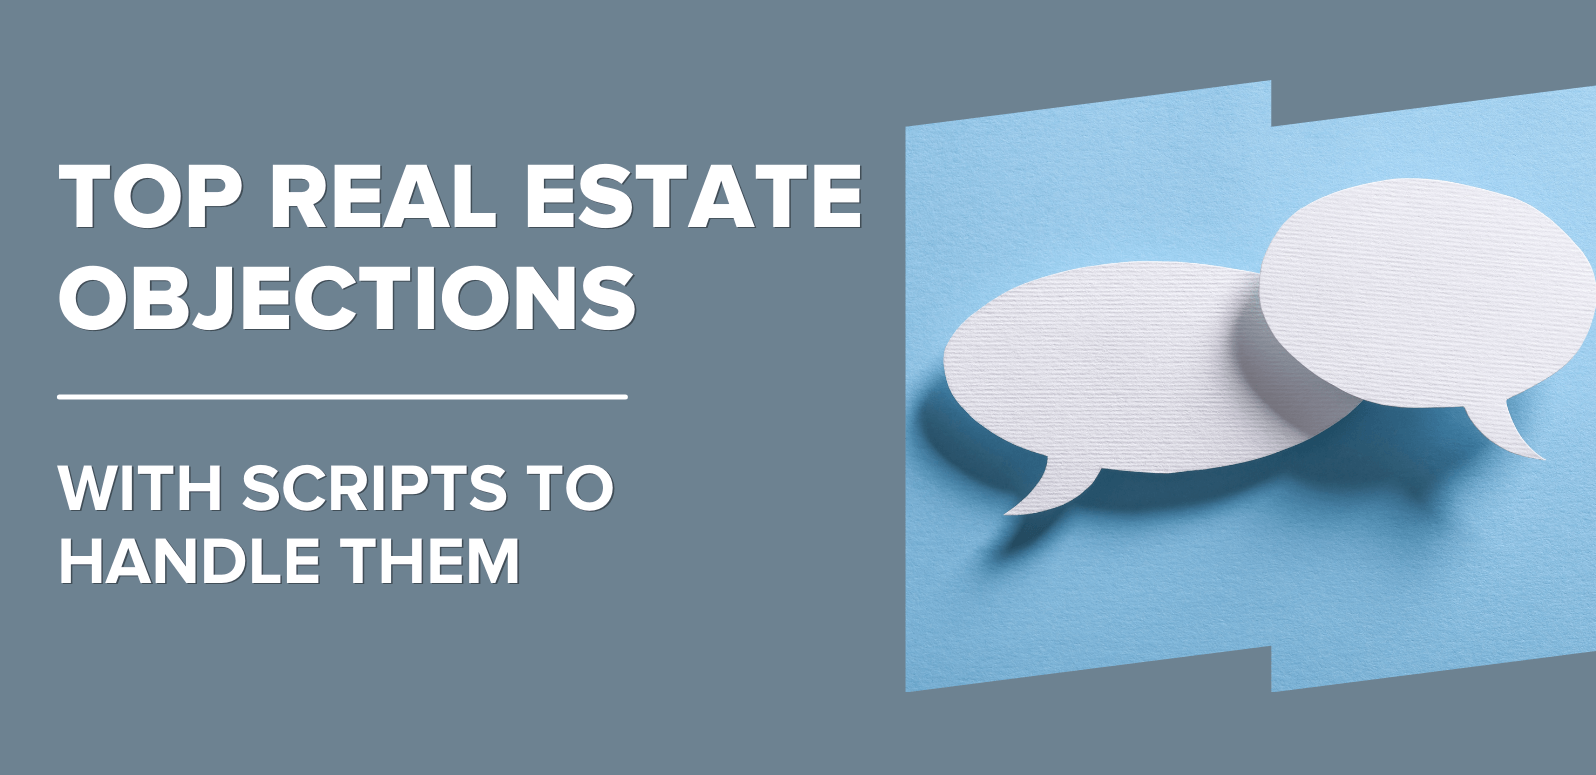 The Top 12 Real Estate Objections Post-2020: Free Scripts for (Almost) Every Situation